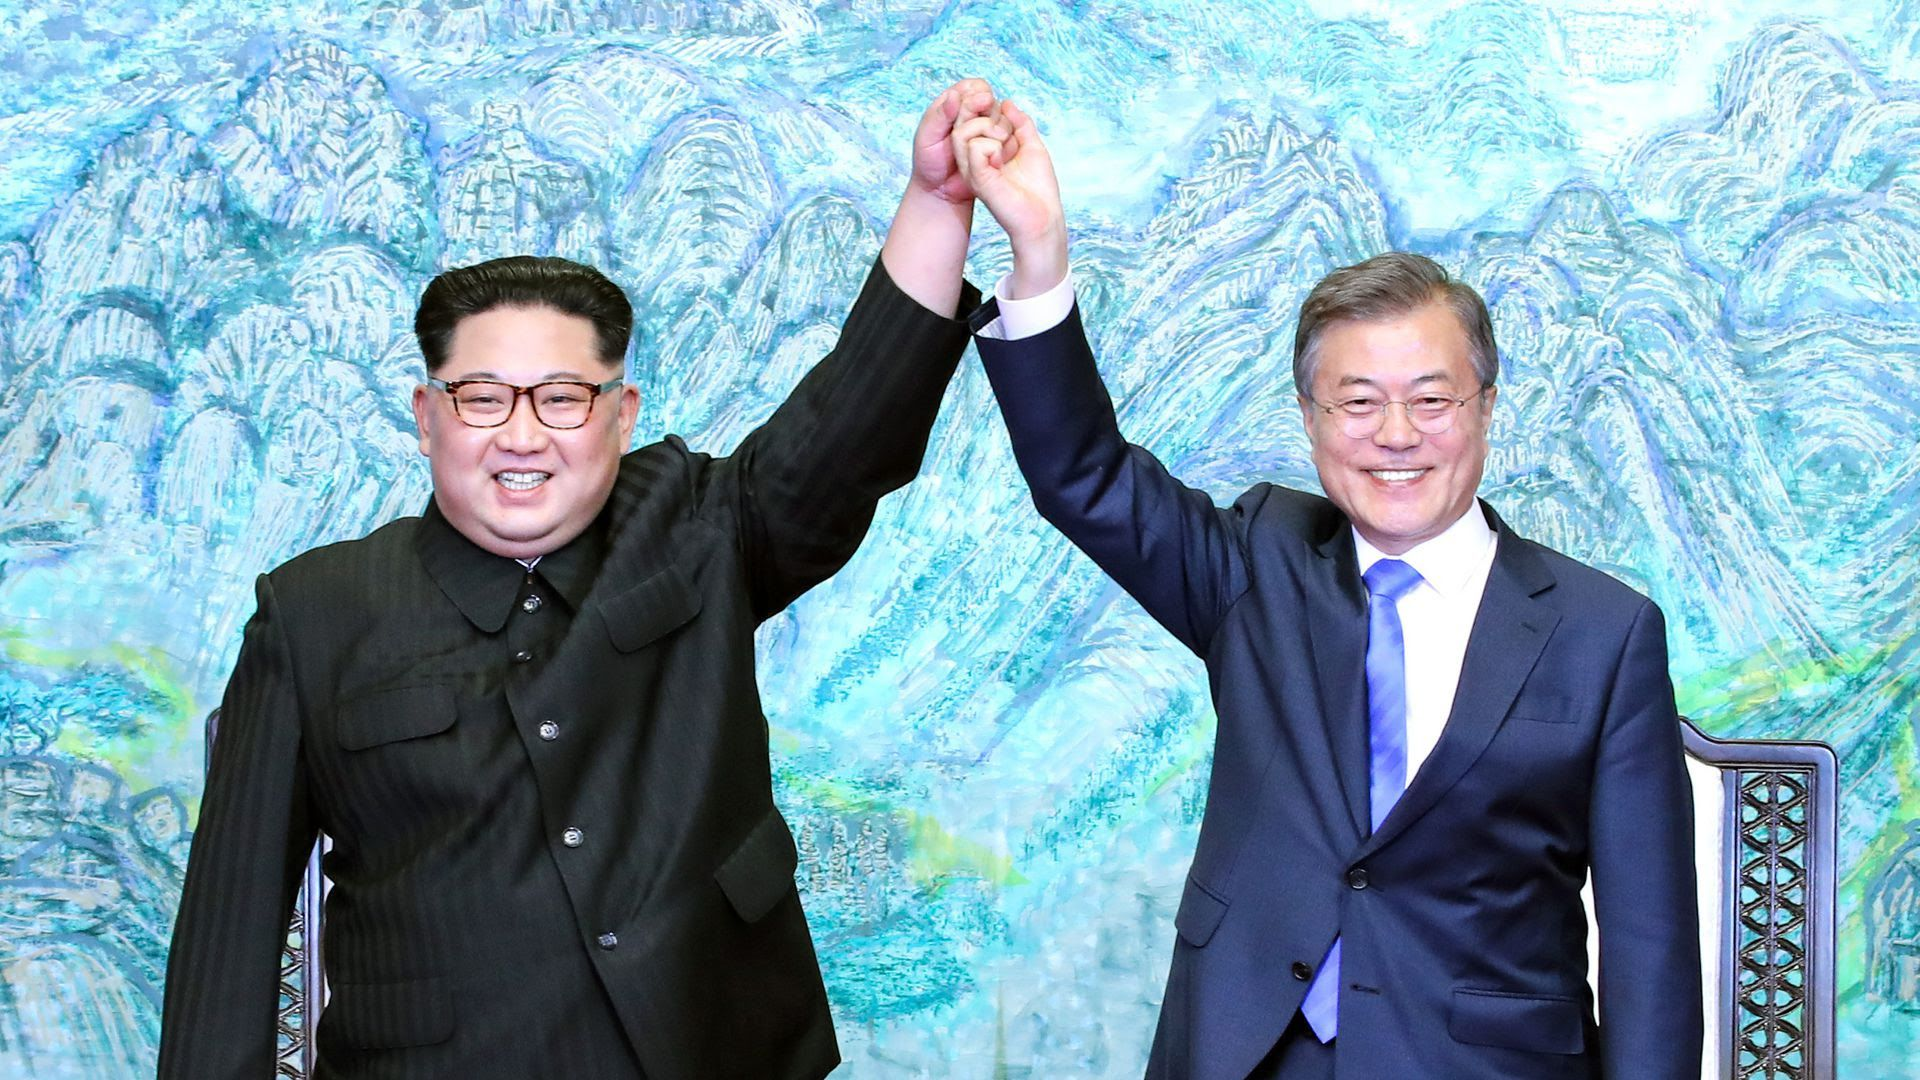 Kim Jong un and Moon Jae in